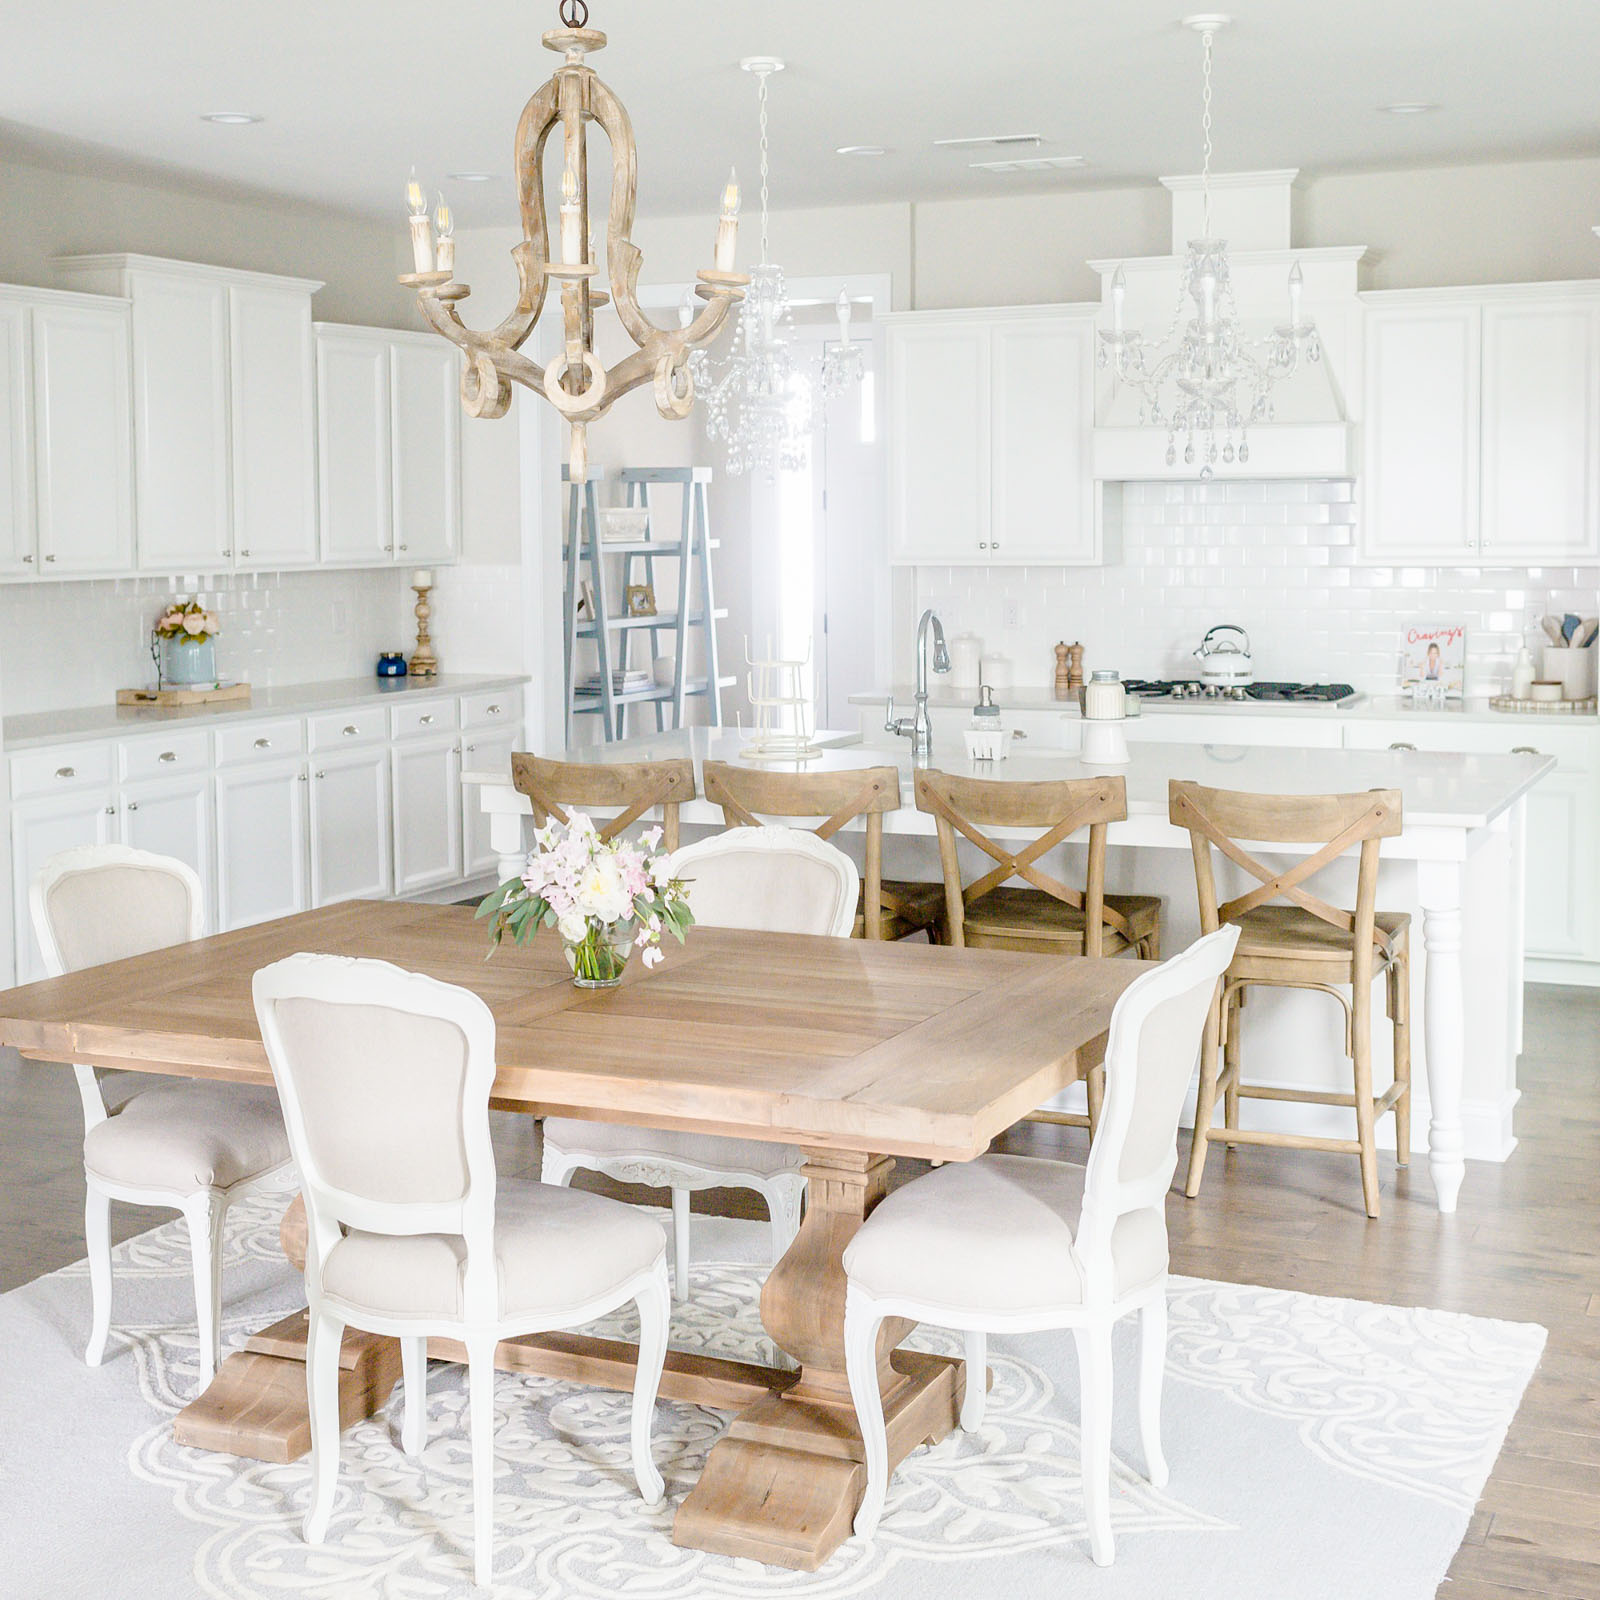 Decorating with White | Cleaning Tips and Tools